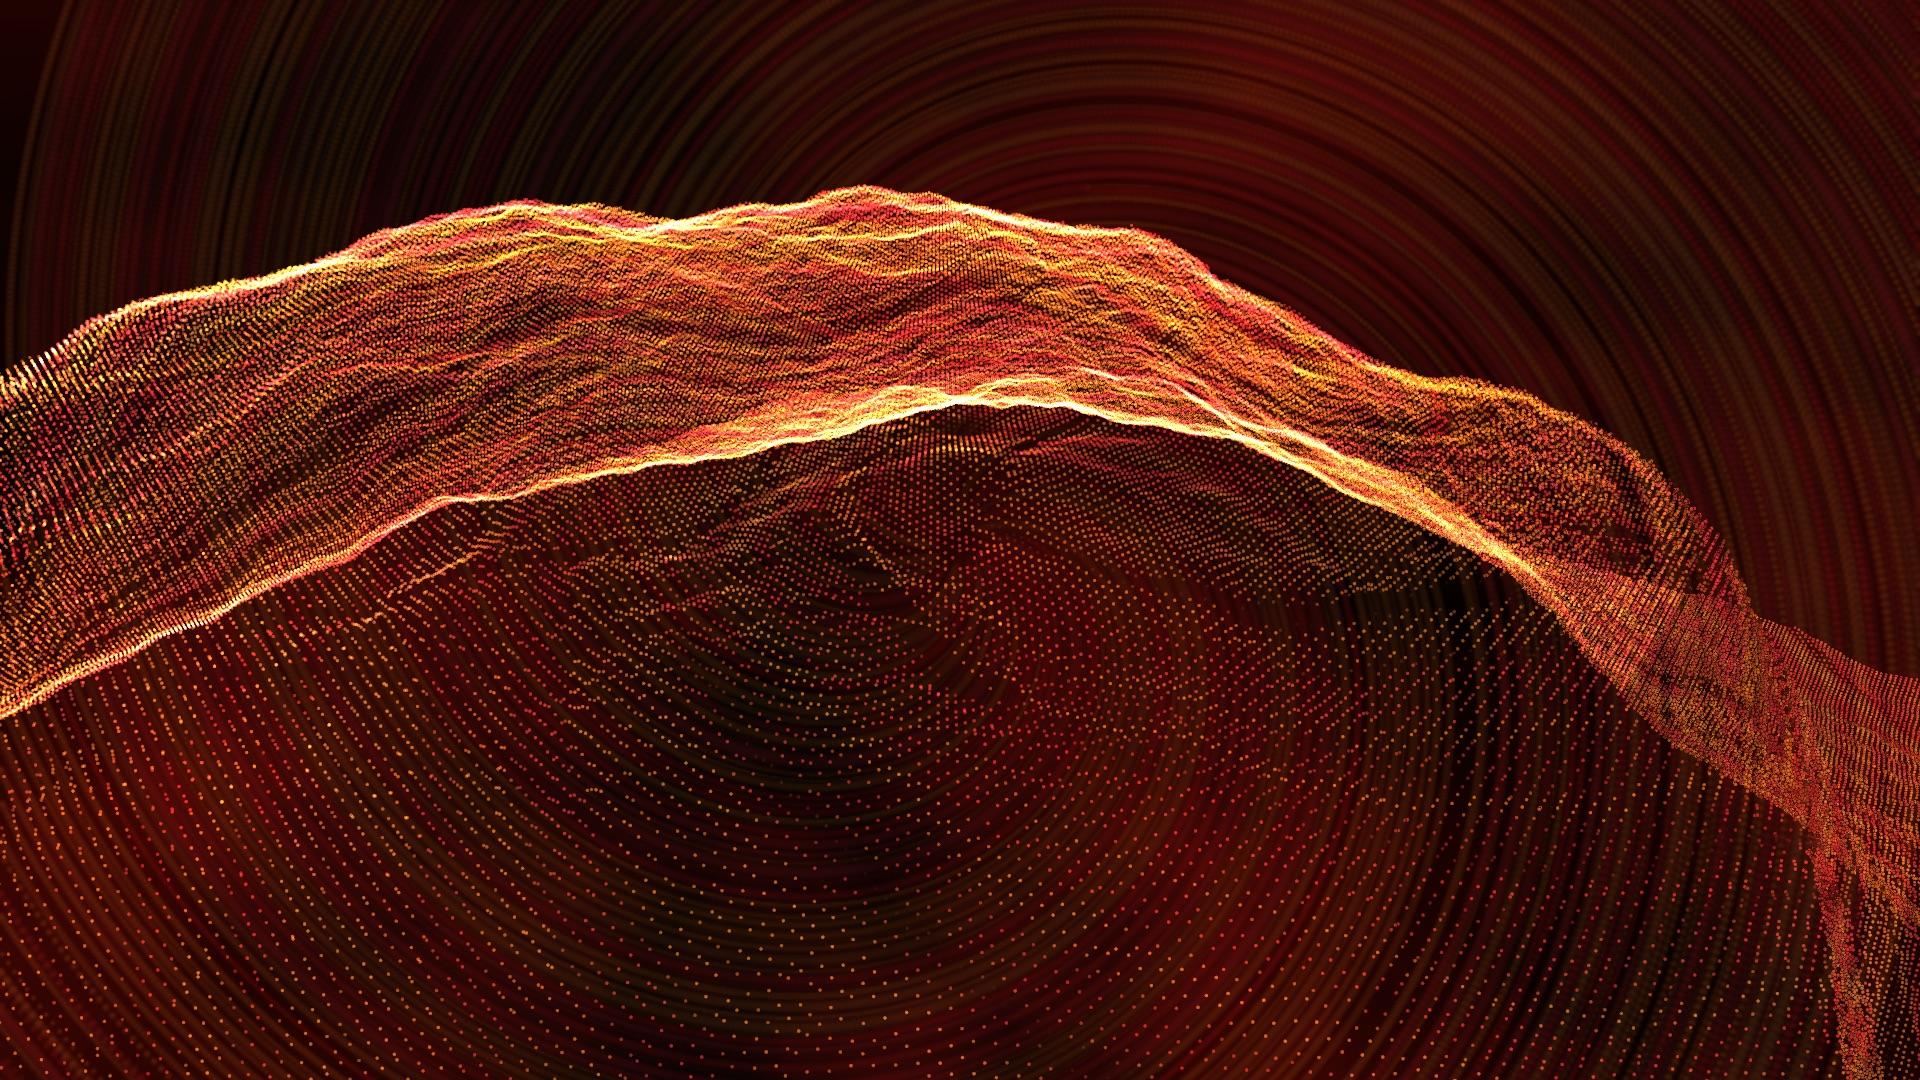 A digital illustration of a warm red and orange swirl with a rock-like texture in the background.